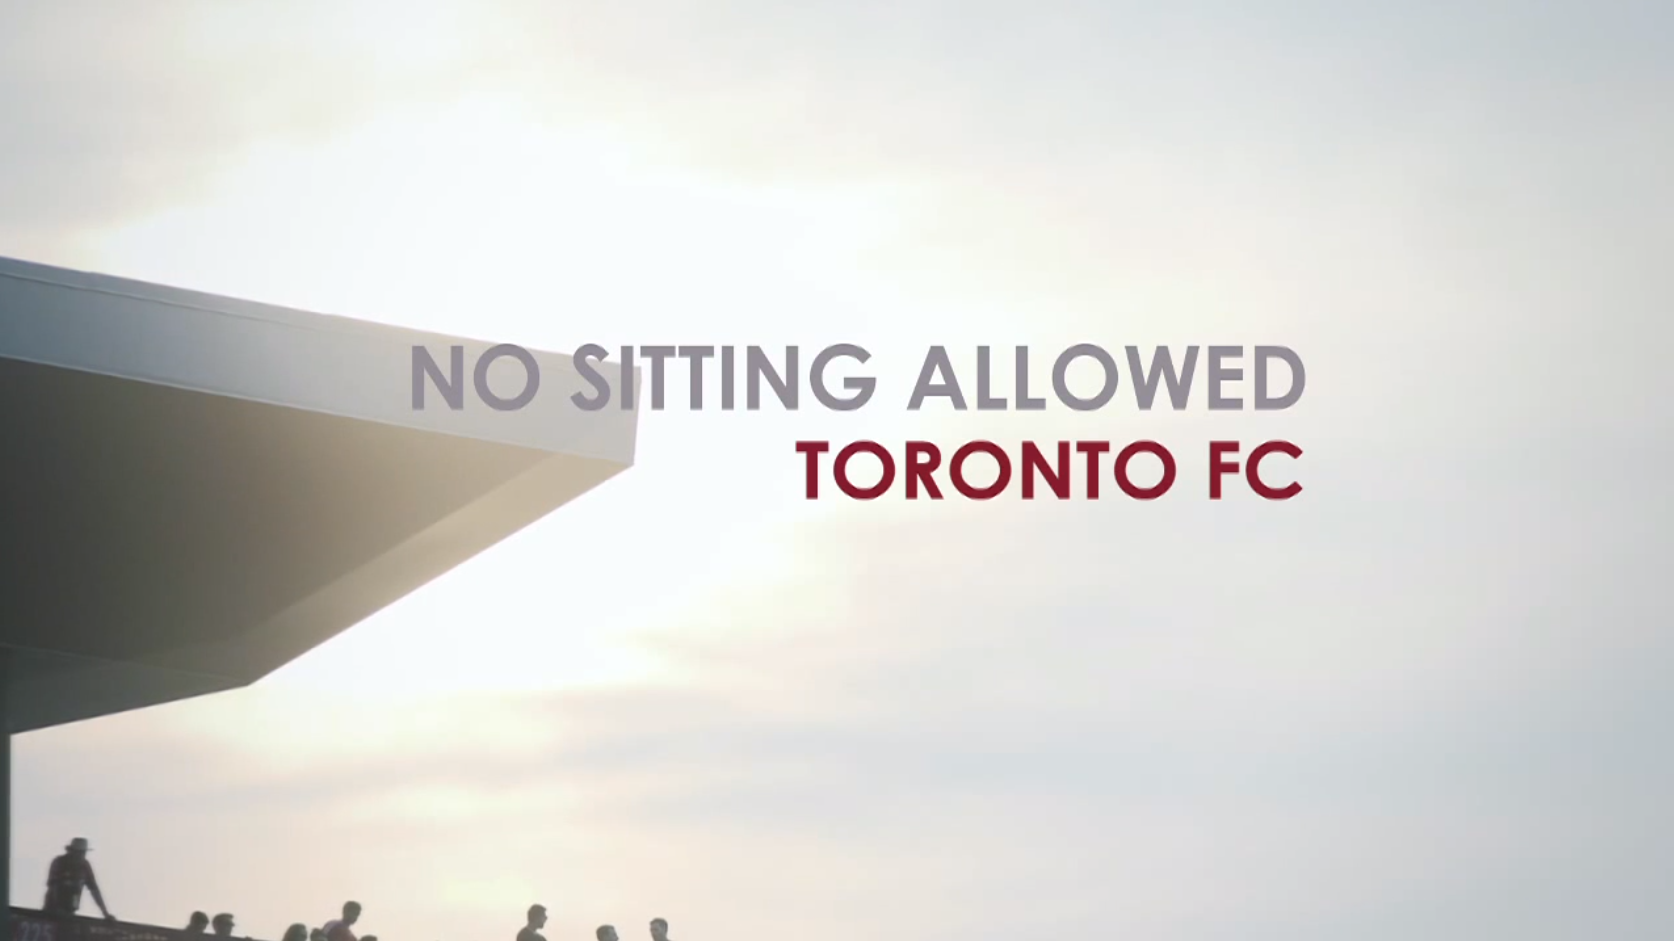 No Sitting Allowed - Toronto FC